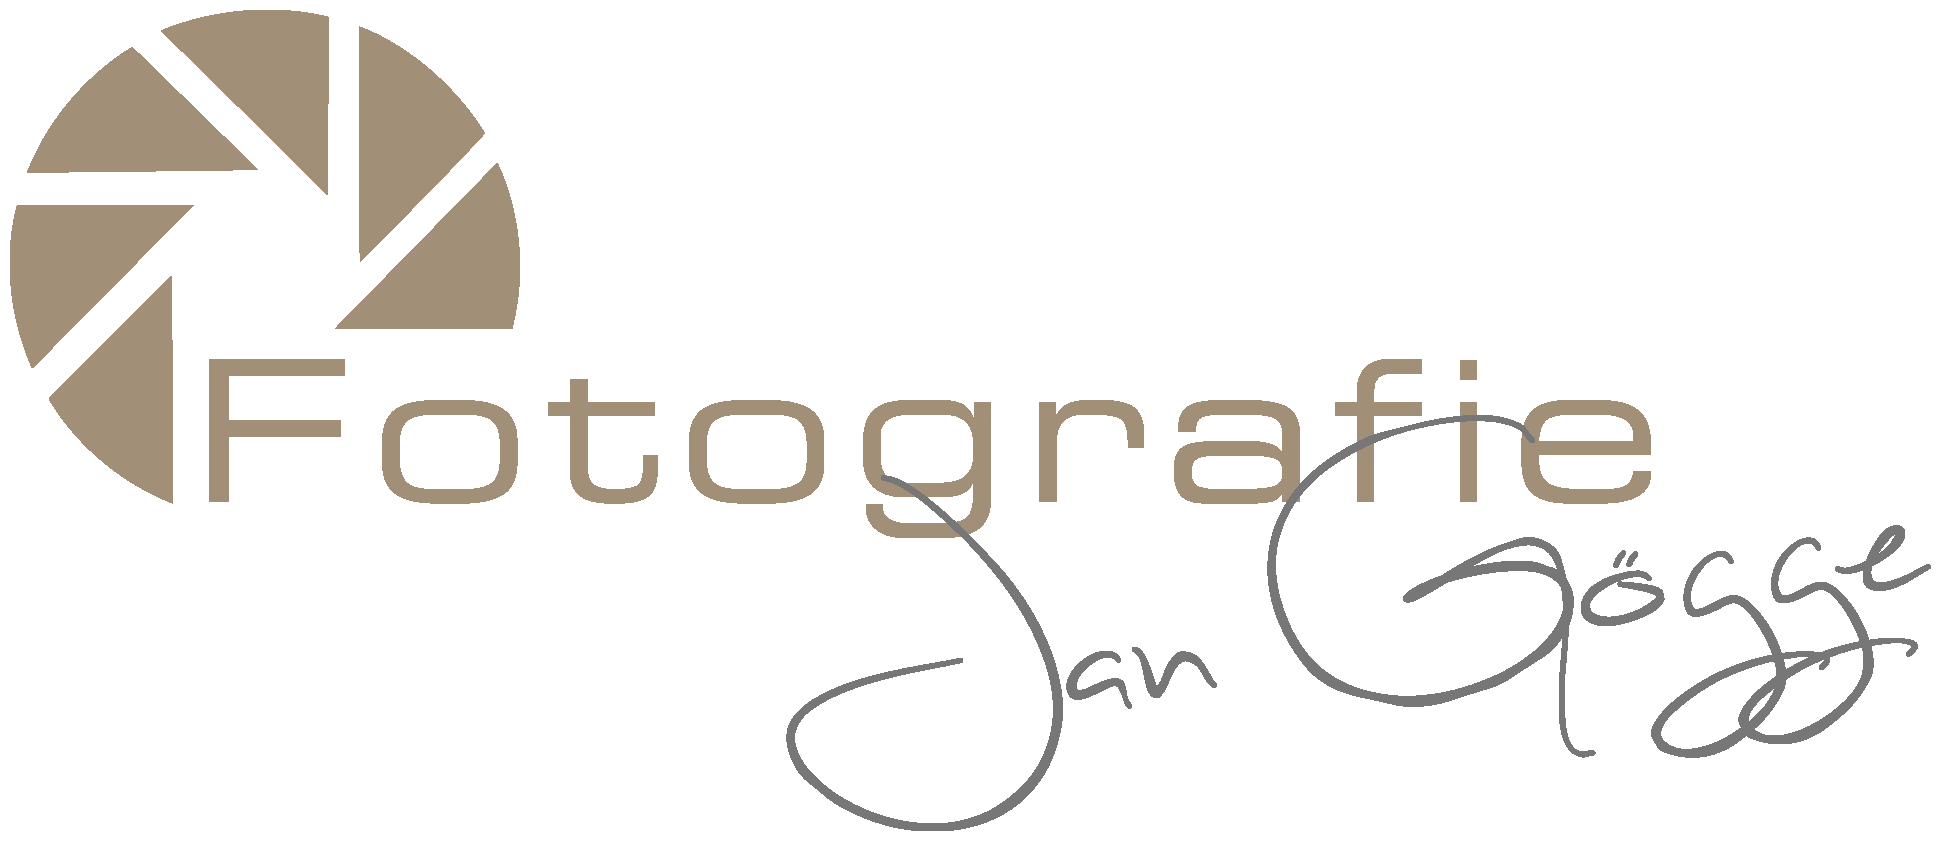 jan Goegge logo